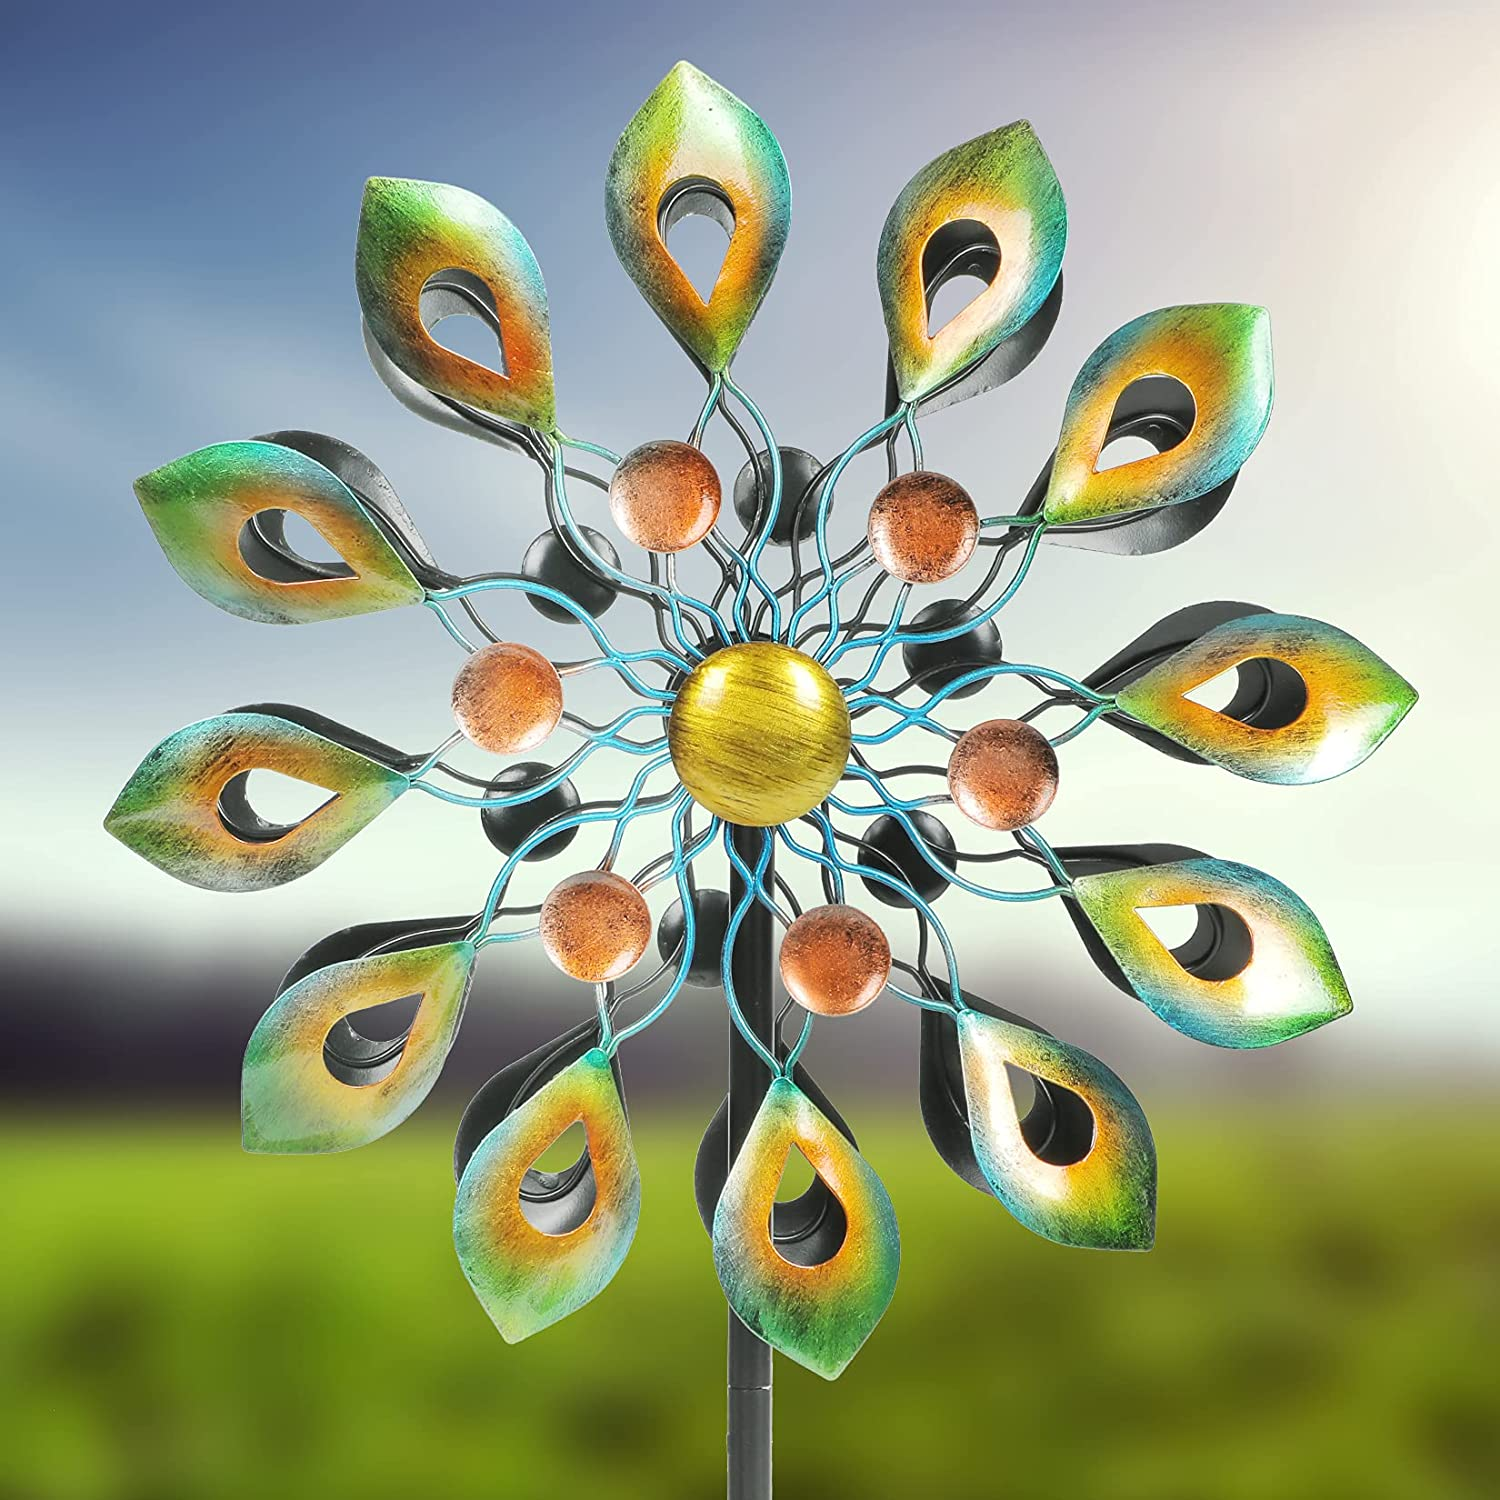 Kinetic Wind Spinner with Garden Stake, Metal Windmill-Kinetic Garden Decoration, 360 Swivel Peacock Outdoor Wind Sculpture Spinners, 63 Inch Dual Direction Colorful Wind Catcher for Yard Lawn